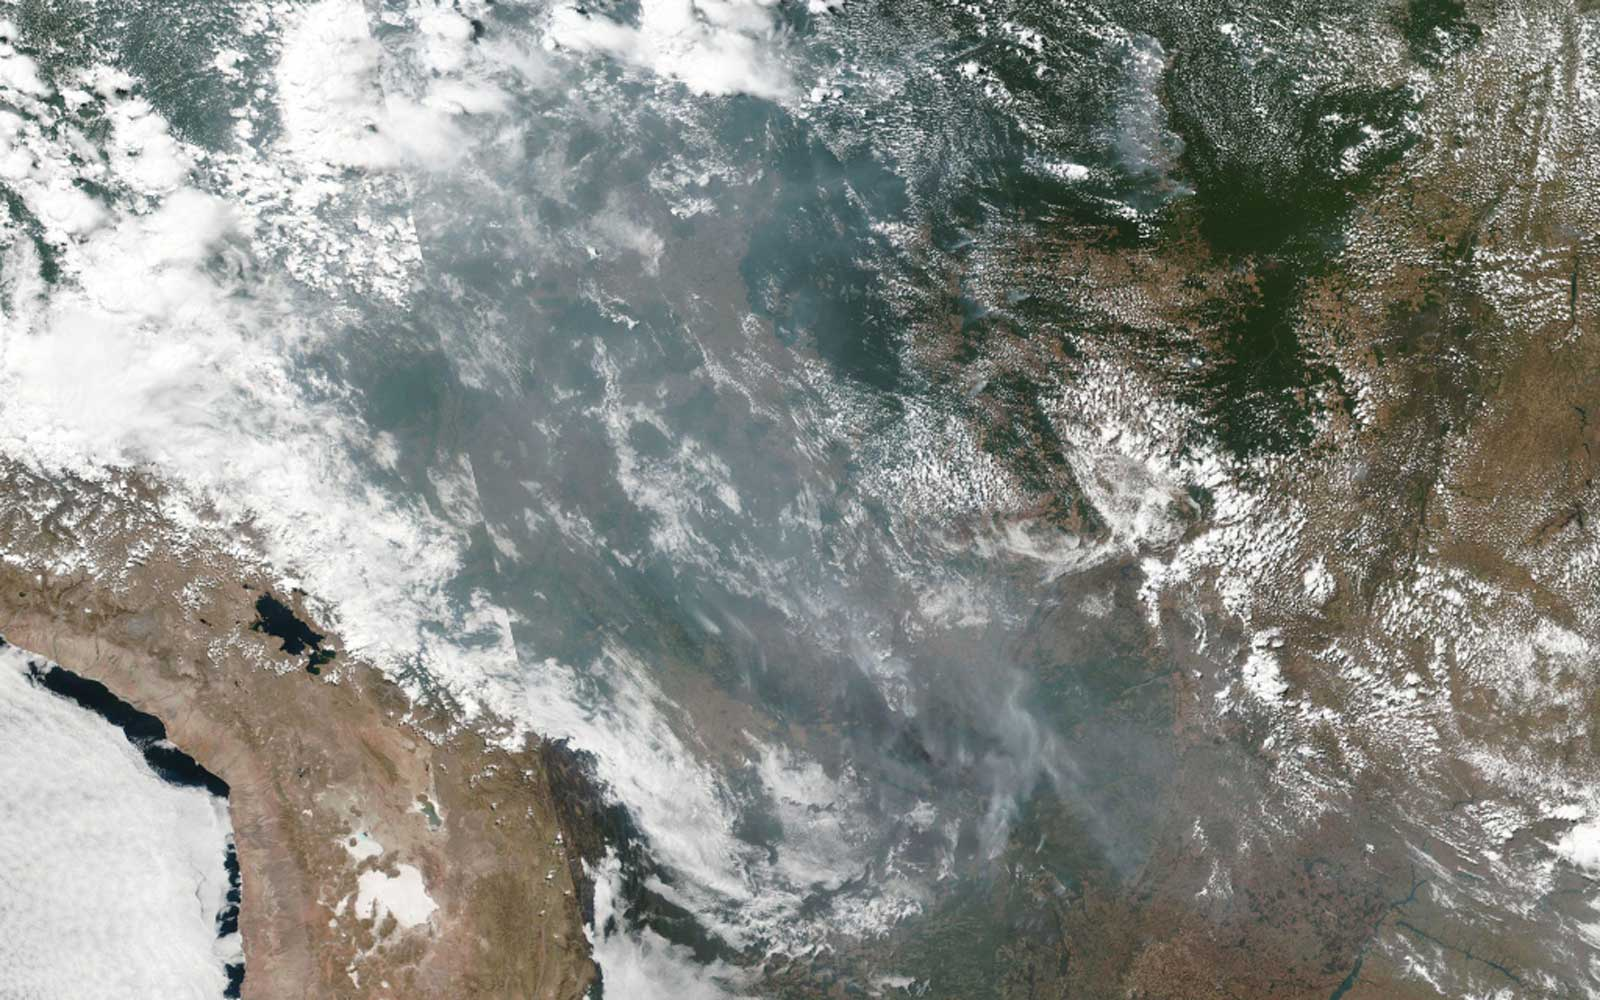 NASA Just Released Devastating Satellite Images of the Amazon Rainforest Fires From Space